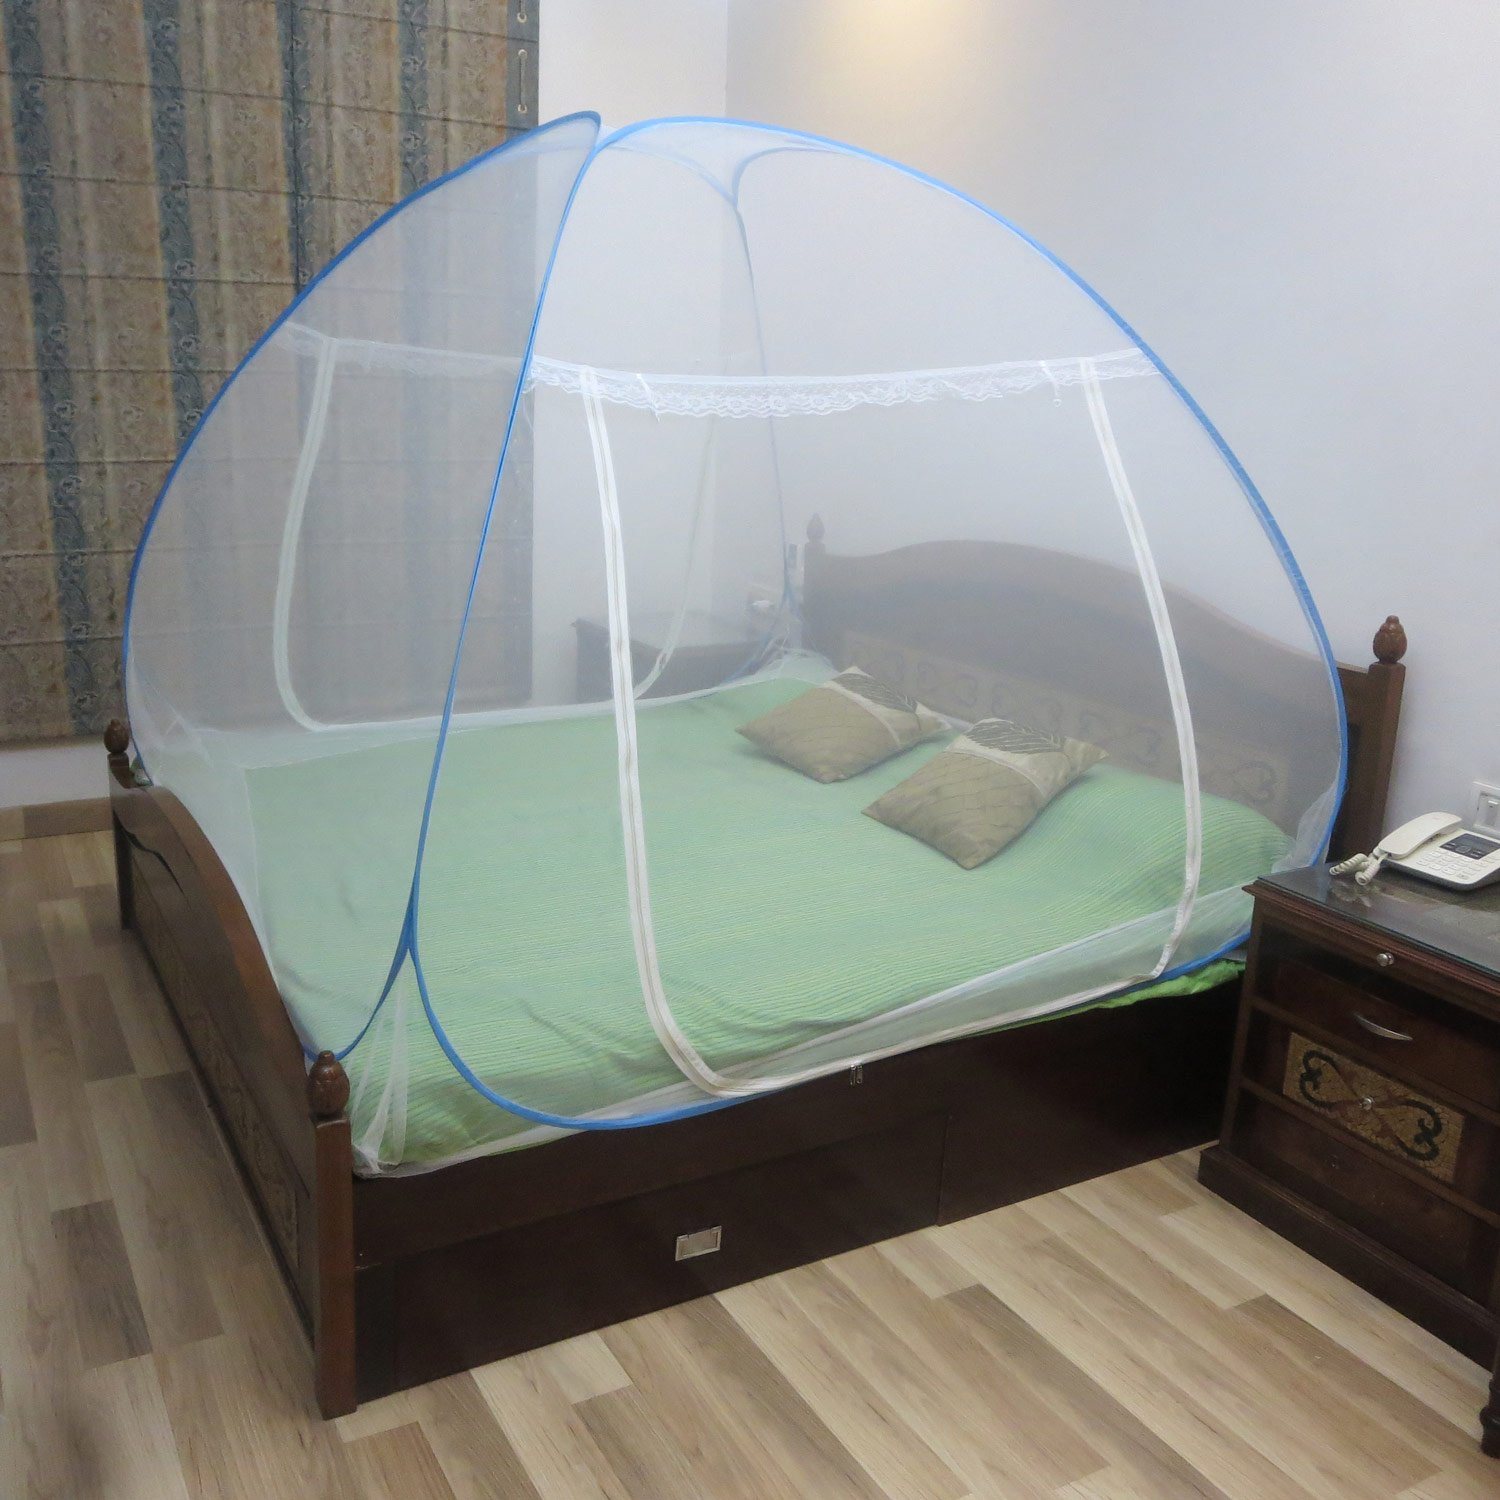 Healthgenie Premium Mosquito Net Foldable King Size (Double Bed)- Blue product image